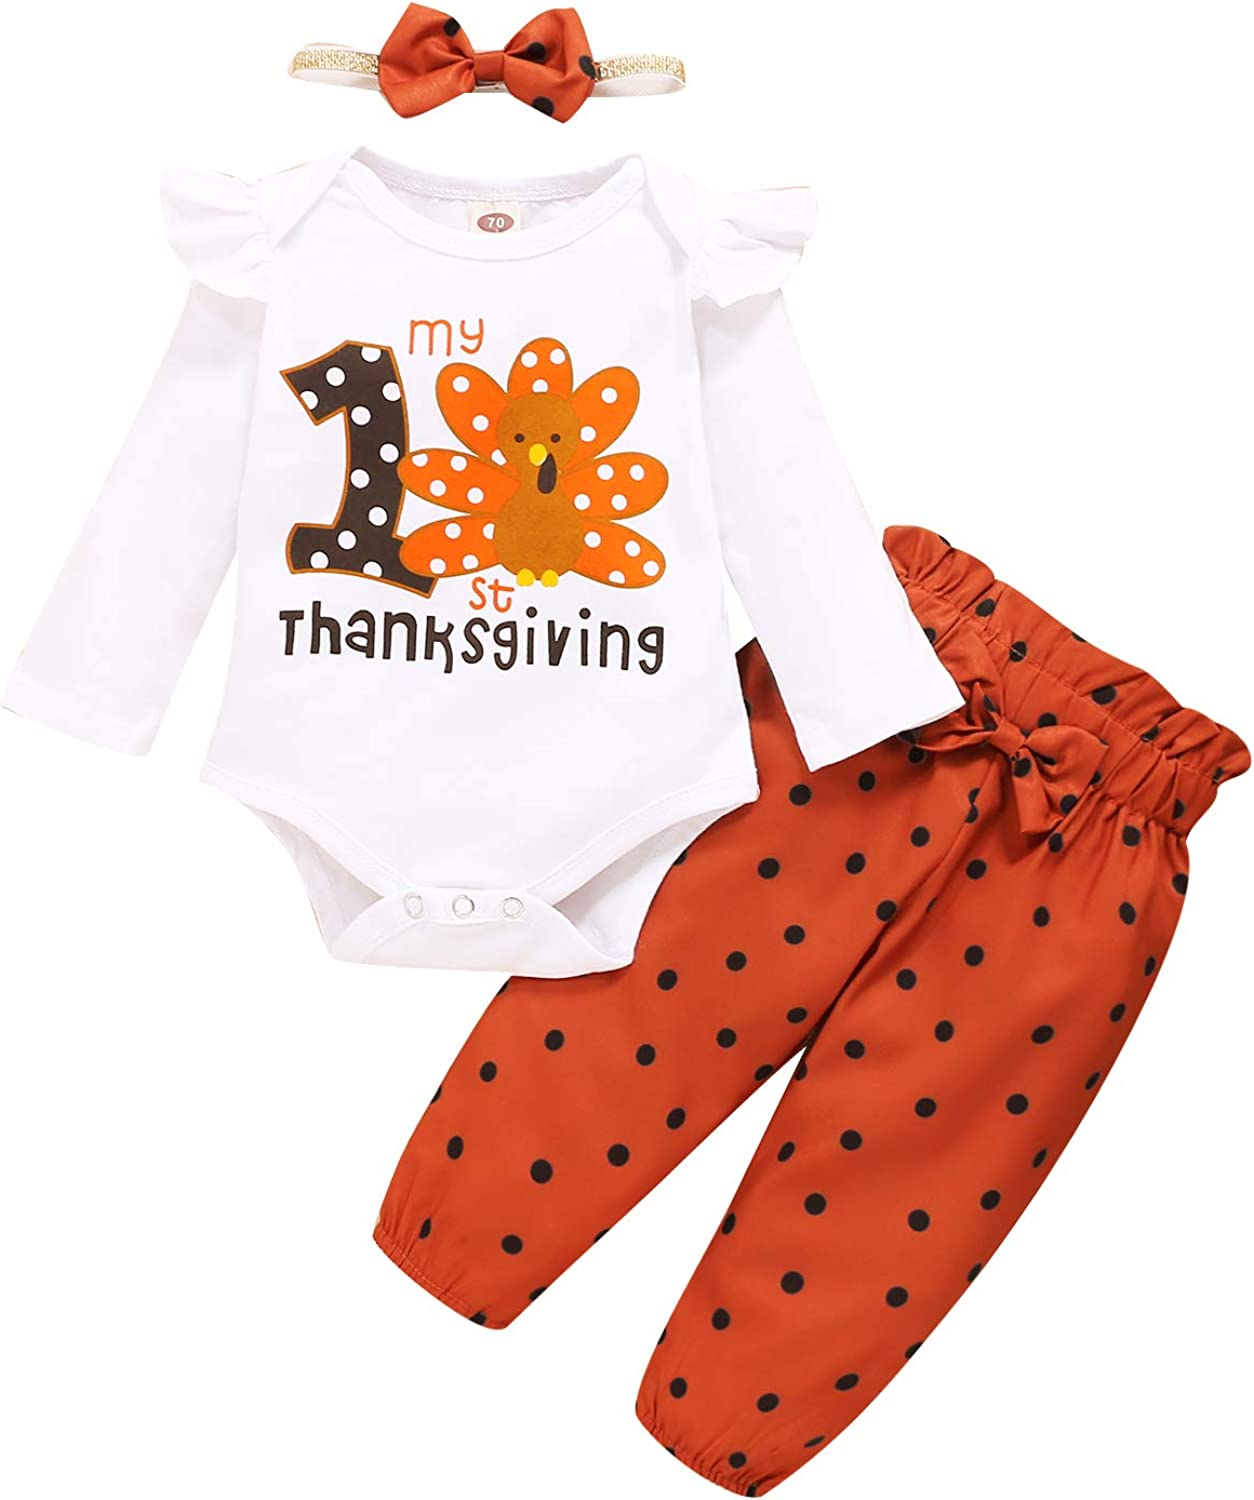 Mikrdoo Baby Girl Clothes Baby Thanksgiving Outfit Toddler Baby Long Sleeve Romper Tops Pants Set Infant Outfit Set